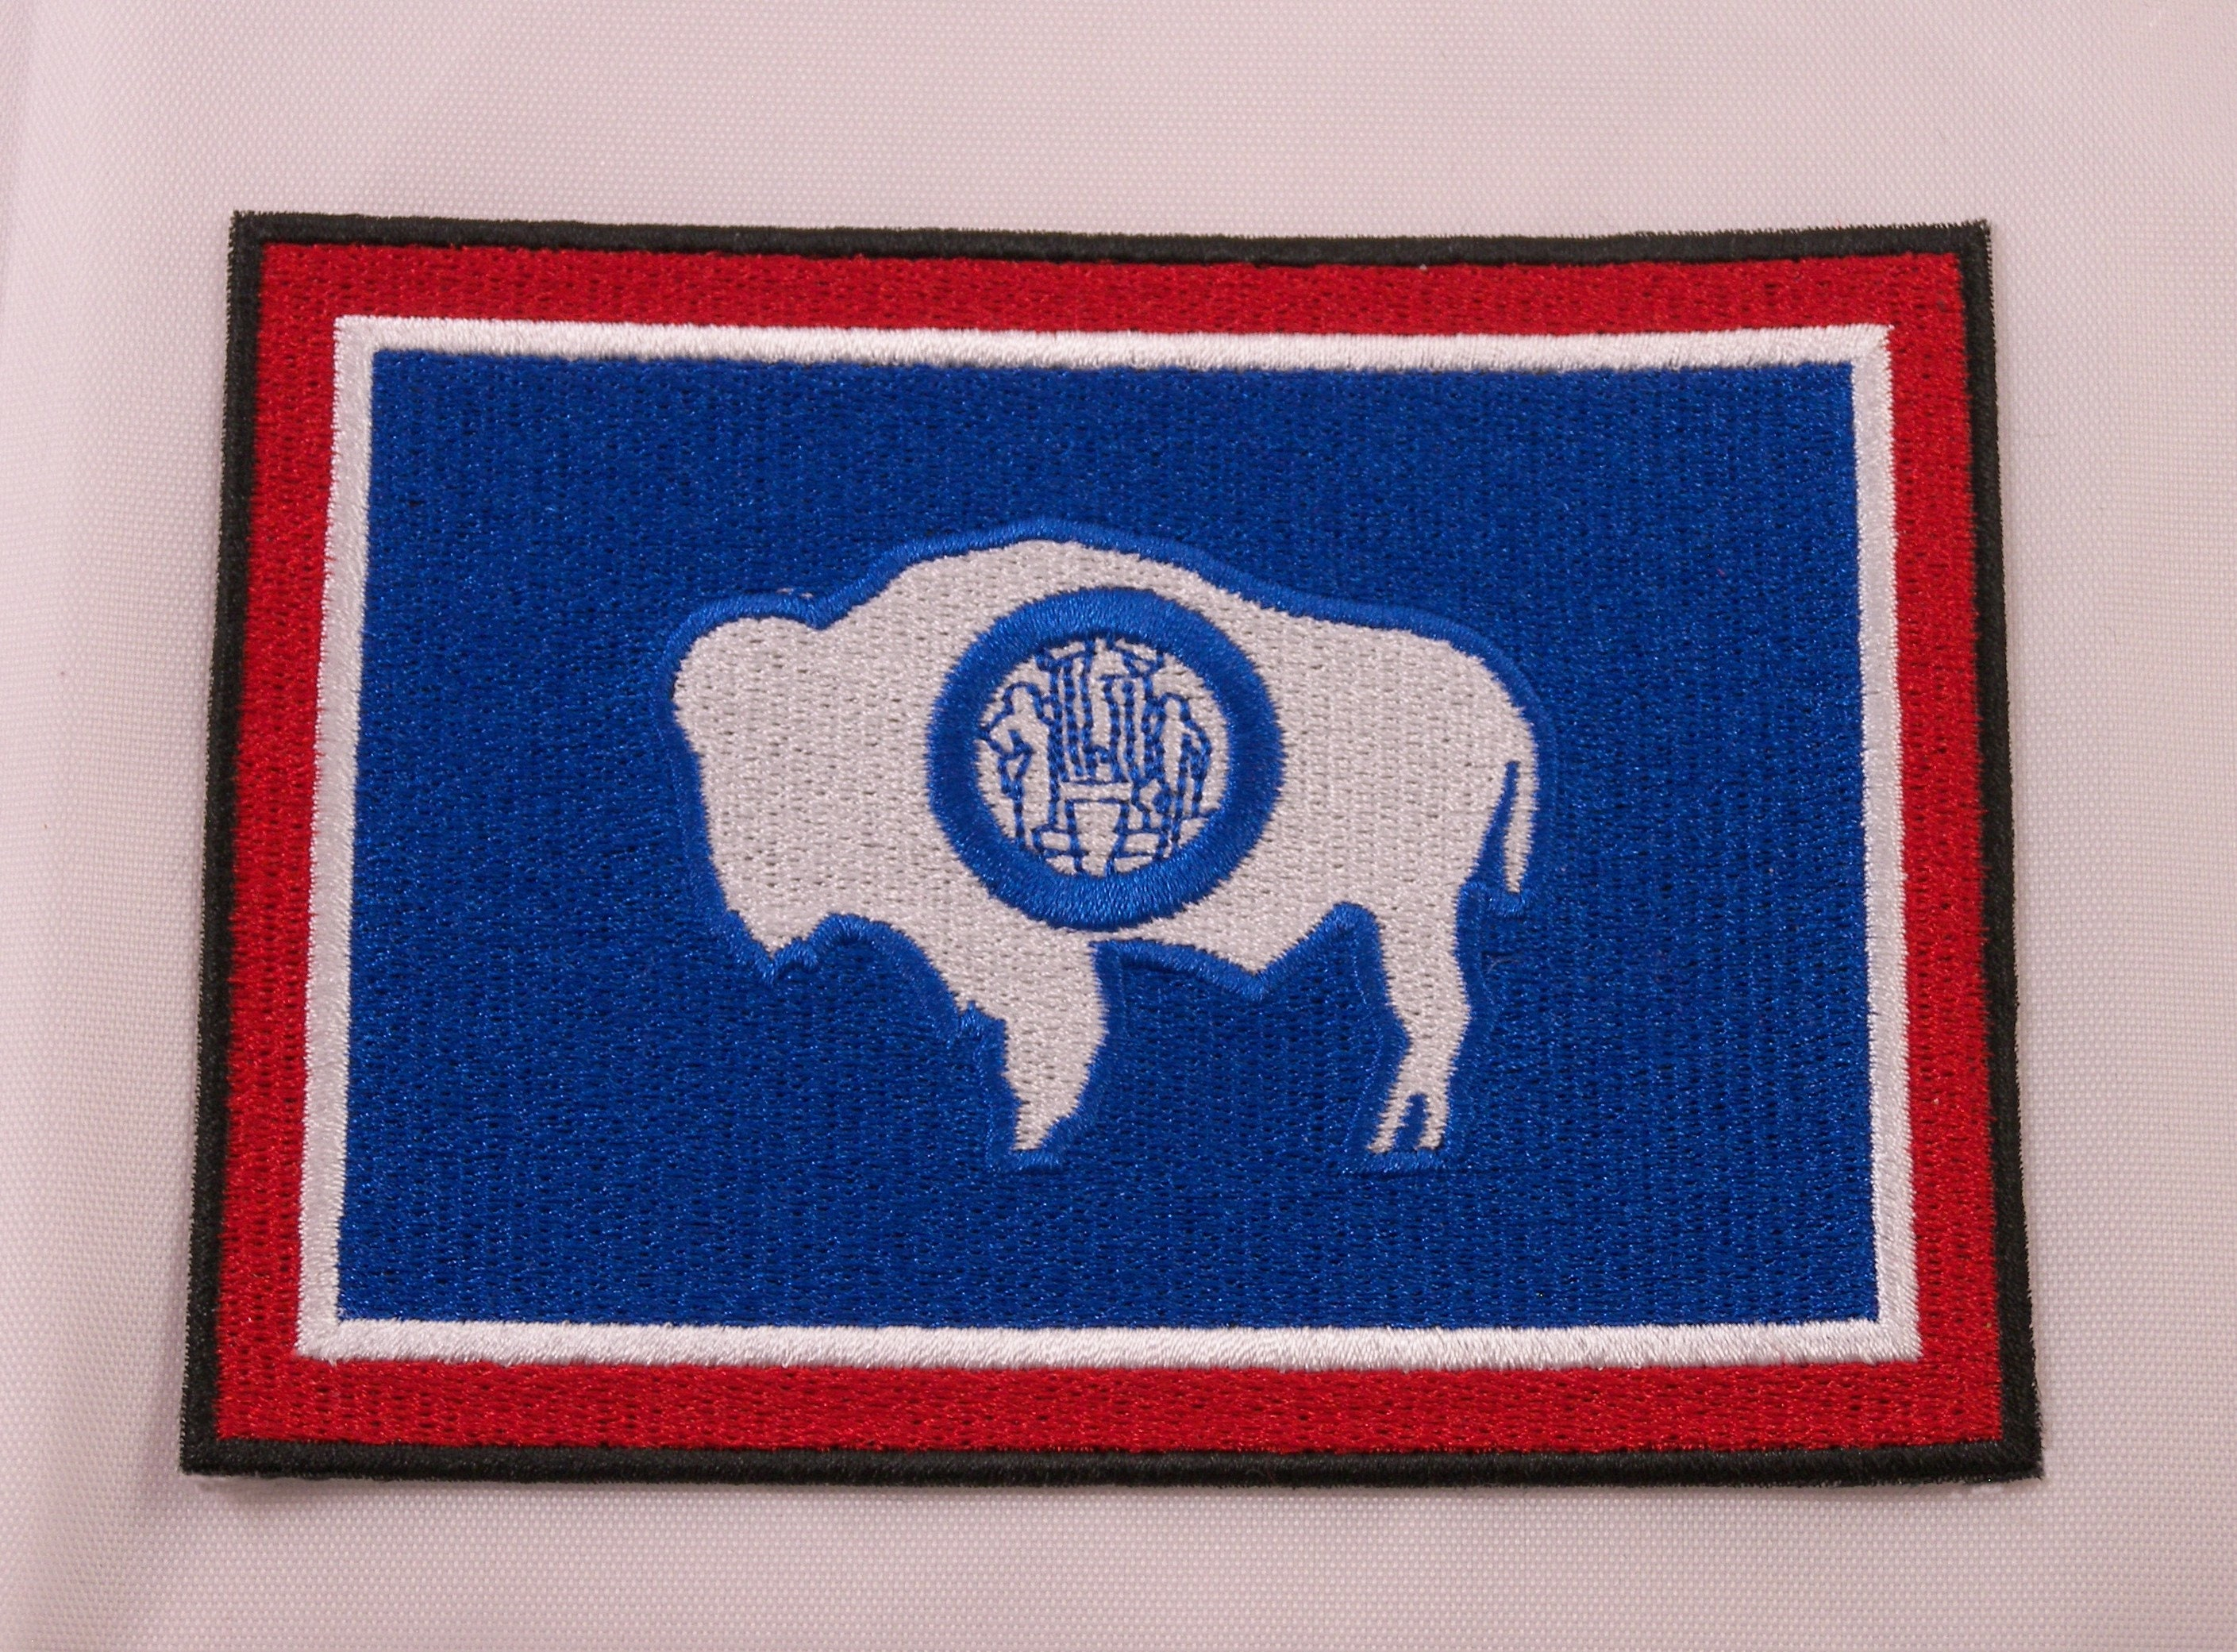 WYOMING STATE FLAG embroidered iron-on PATCH EMBLEM WY